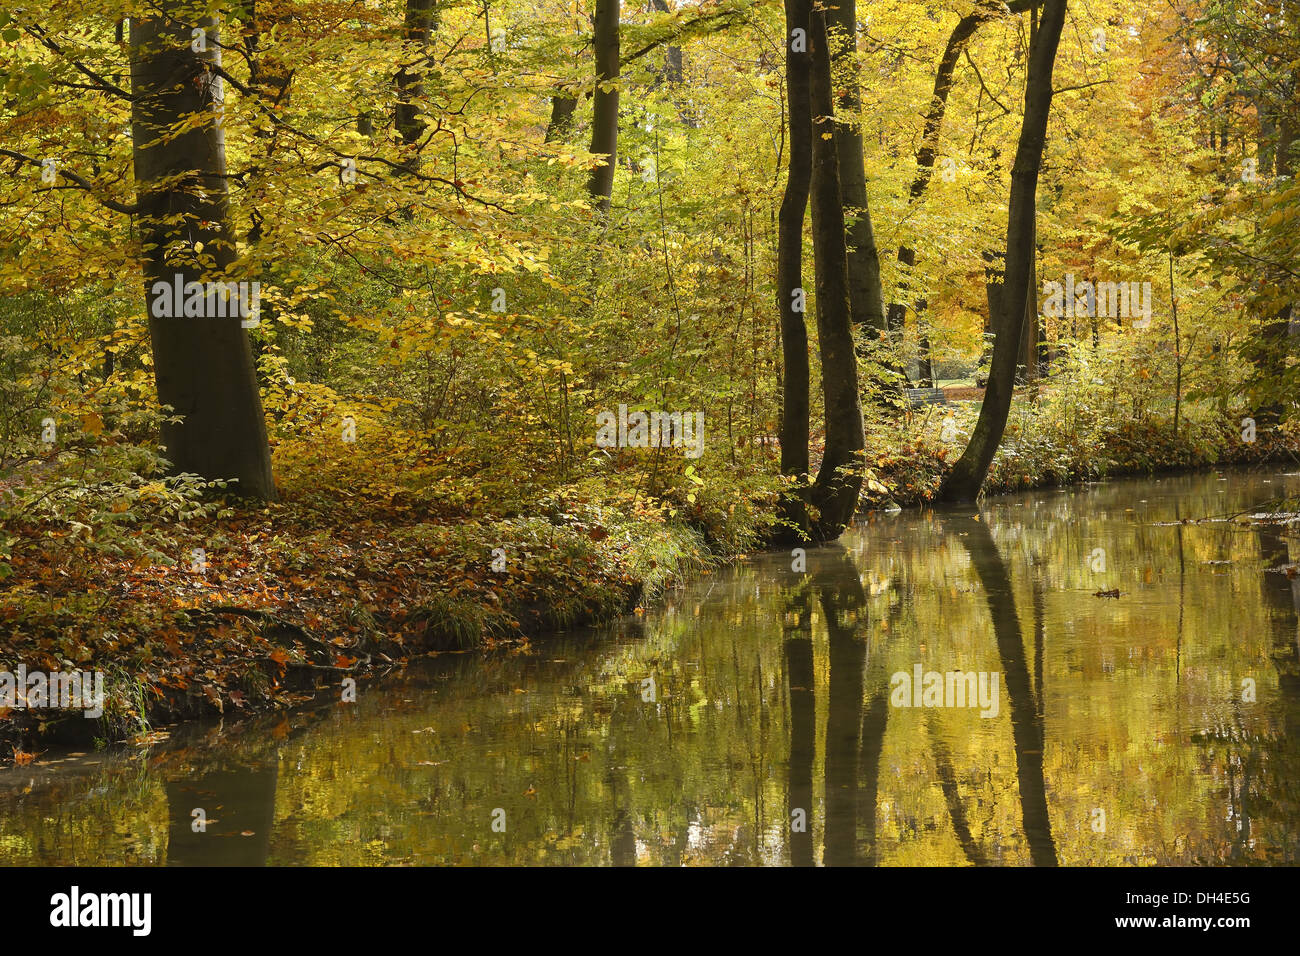 Colorful Autumn Foliage with Water Reflections - Stock Image